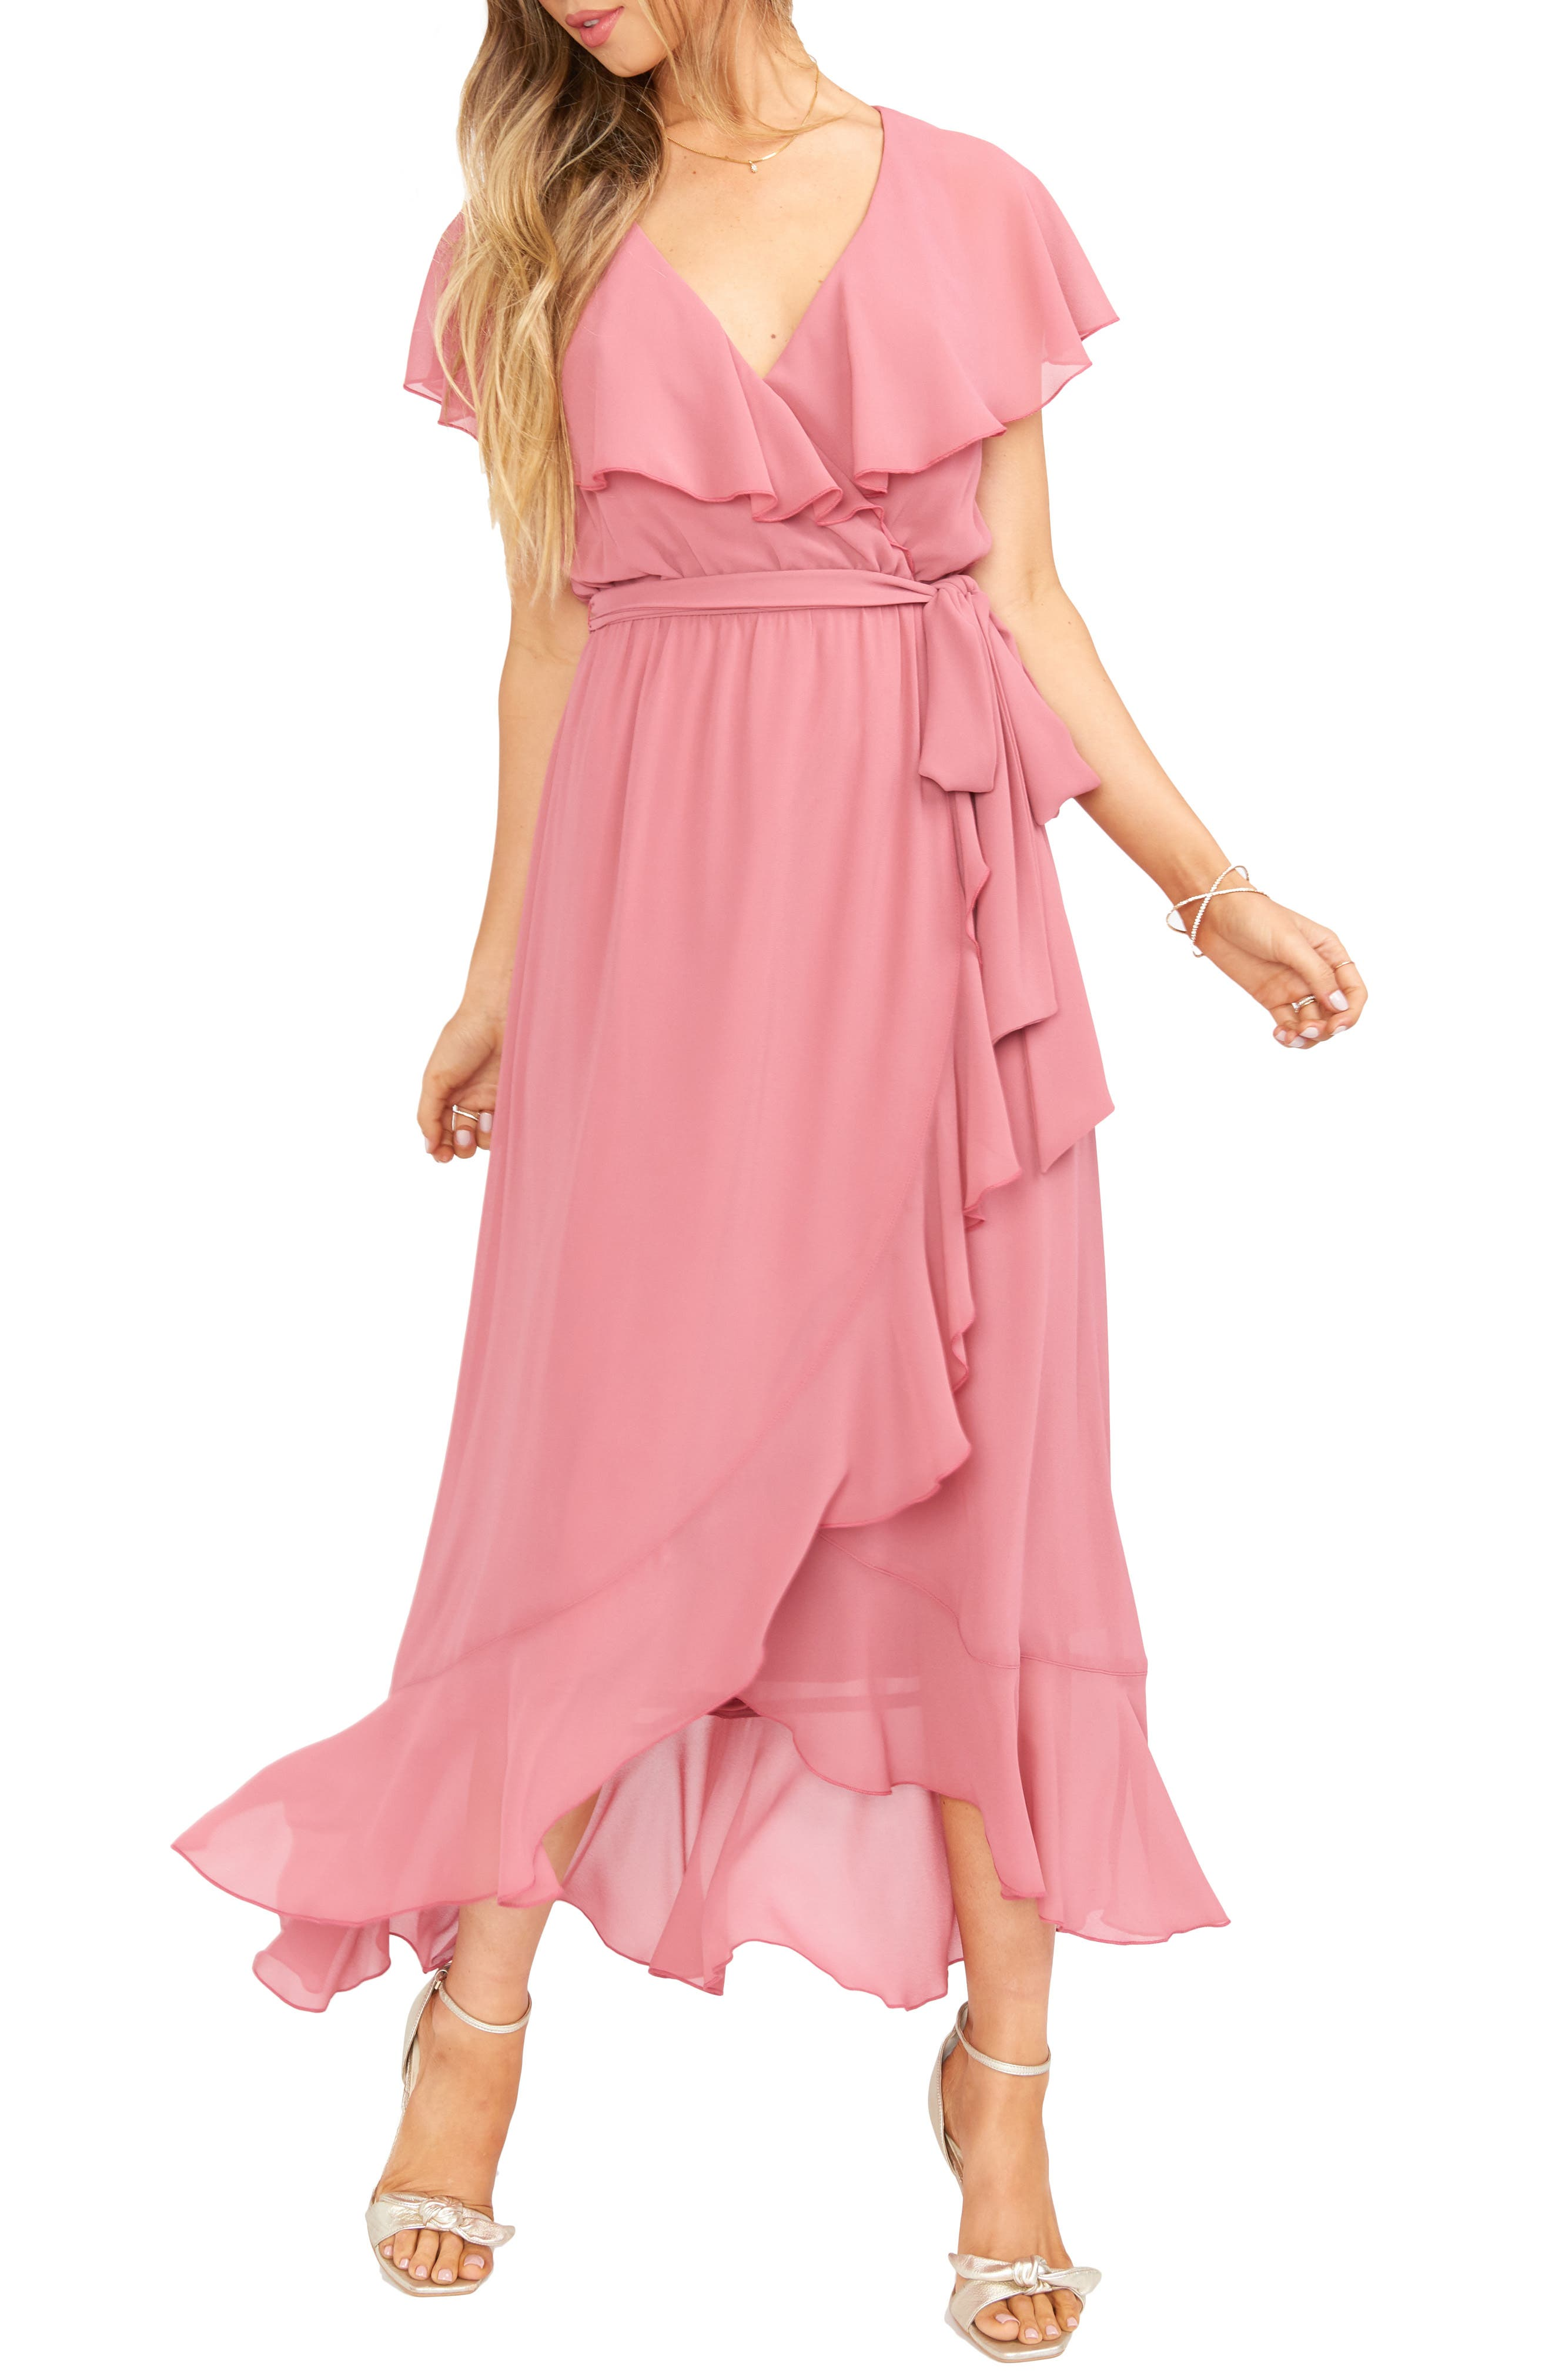 70s Prom, Formal, Evening, Party Dresses Womens Show Me Your Mumu Jess Ruffle Maxi Dress Size XX-Small - Pink $118.80 AT vintagedancer.com